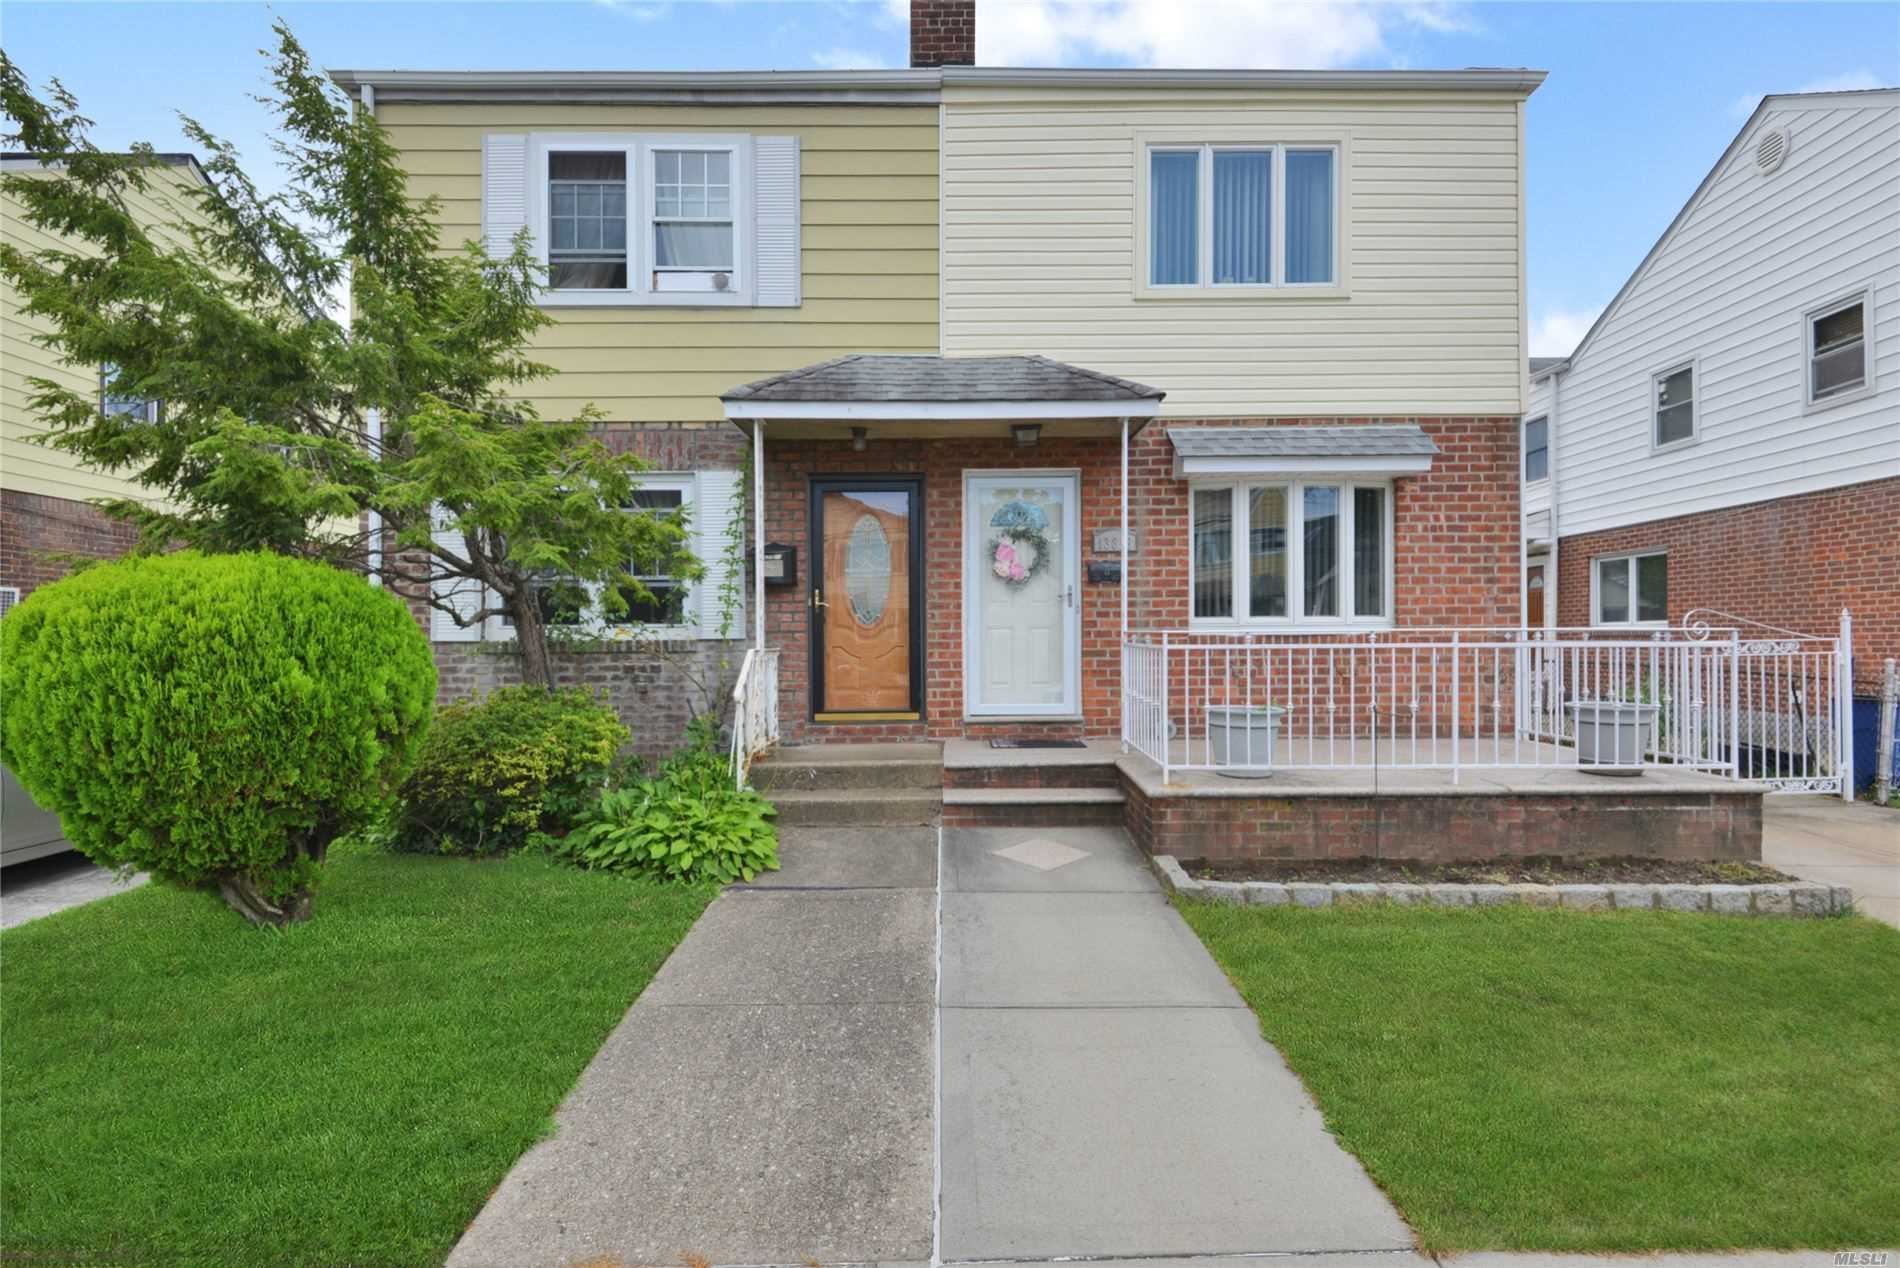 138-18 63 Ave, Flushing, NY 11367 - MLS#: 3239569